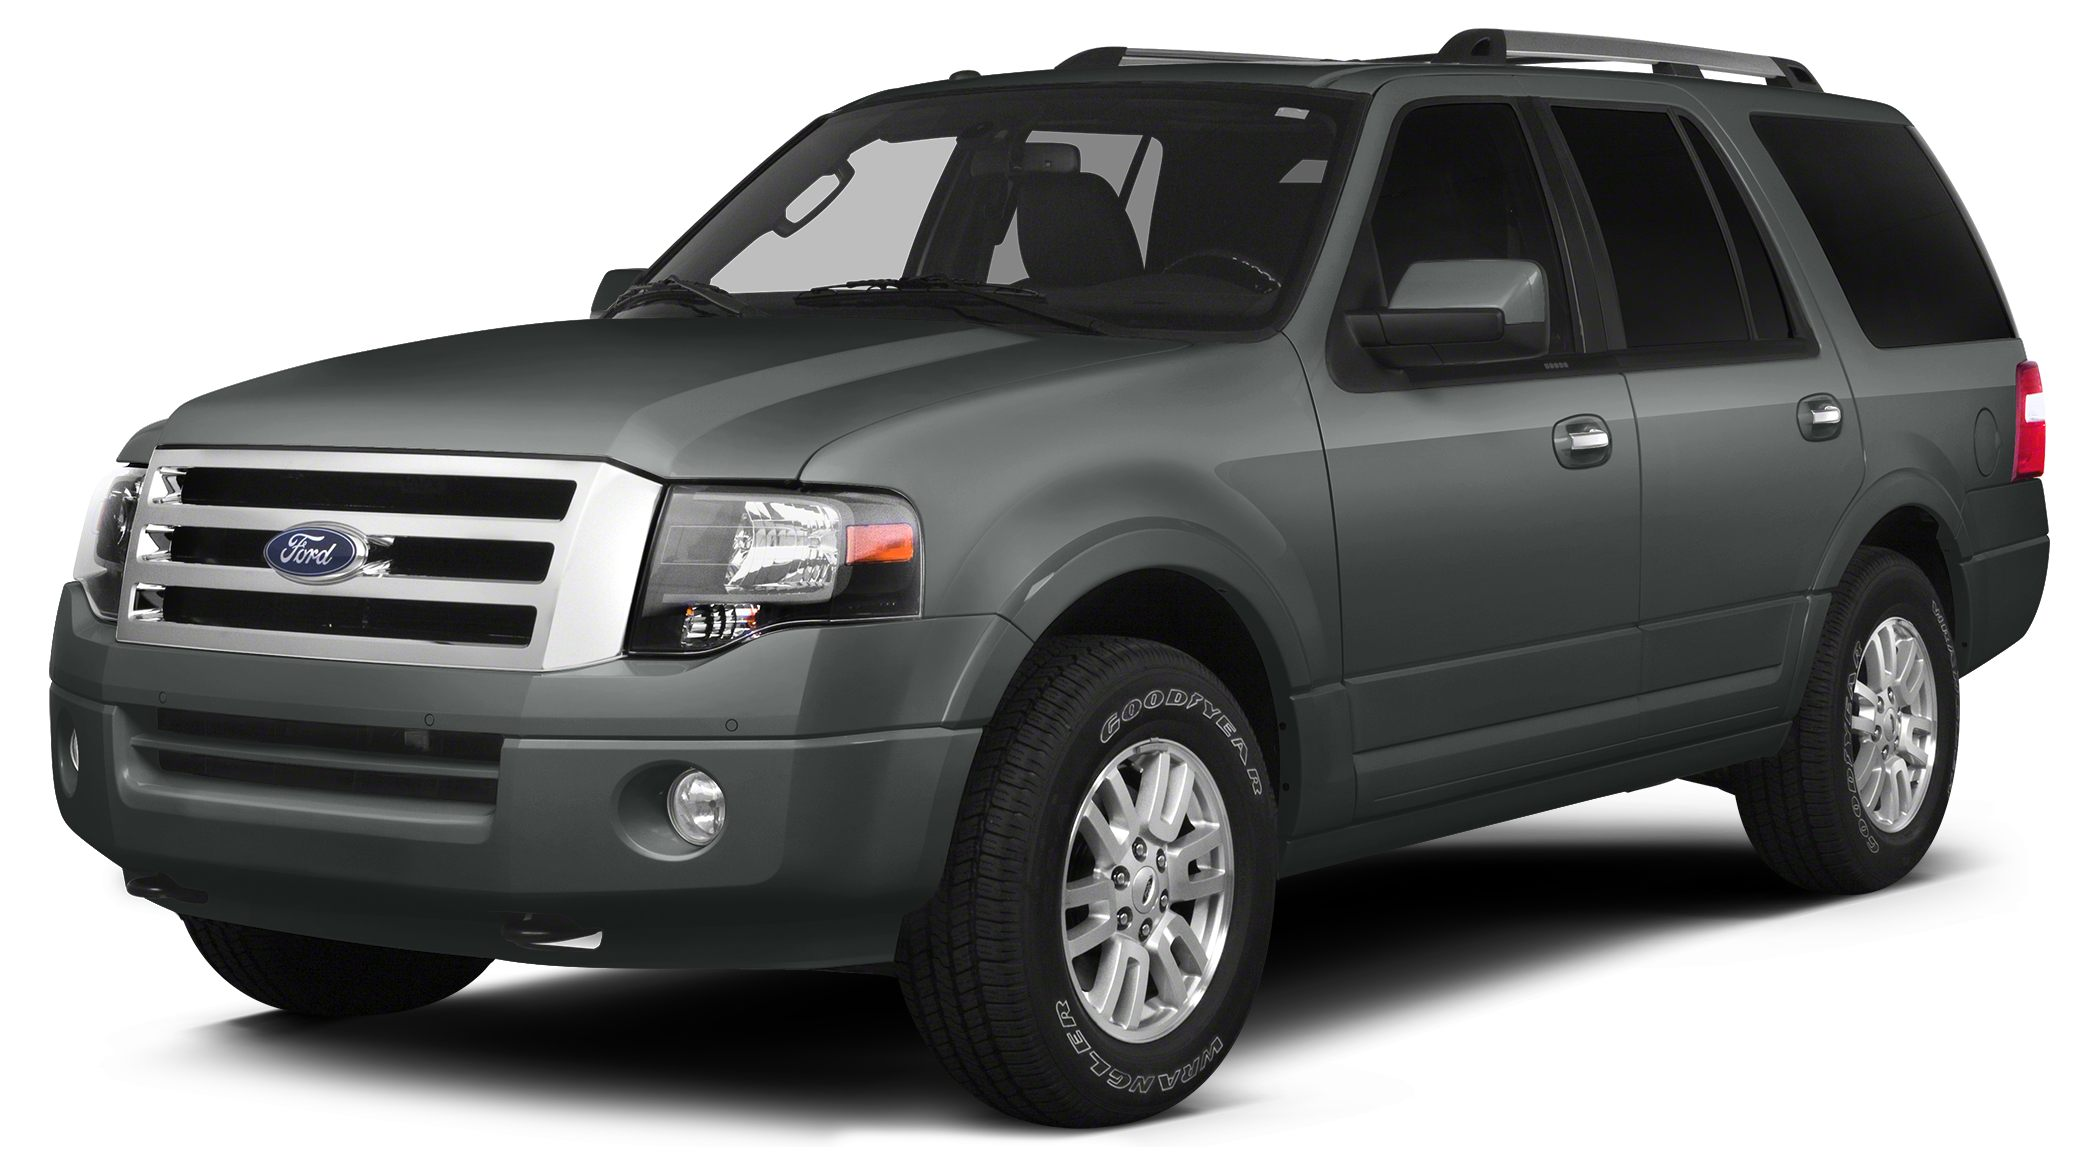 2014 Ford Expedition Limited This 2014 Ford Expedition Limited is very clean and nicely equipped w